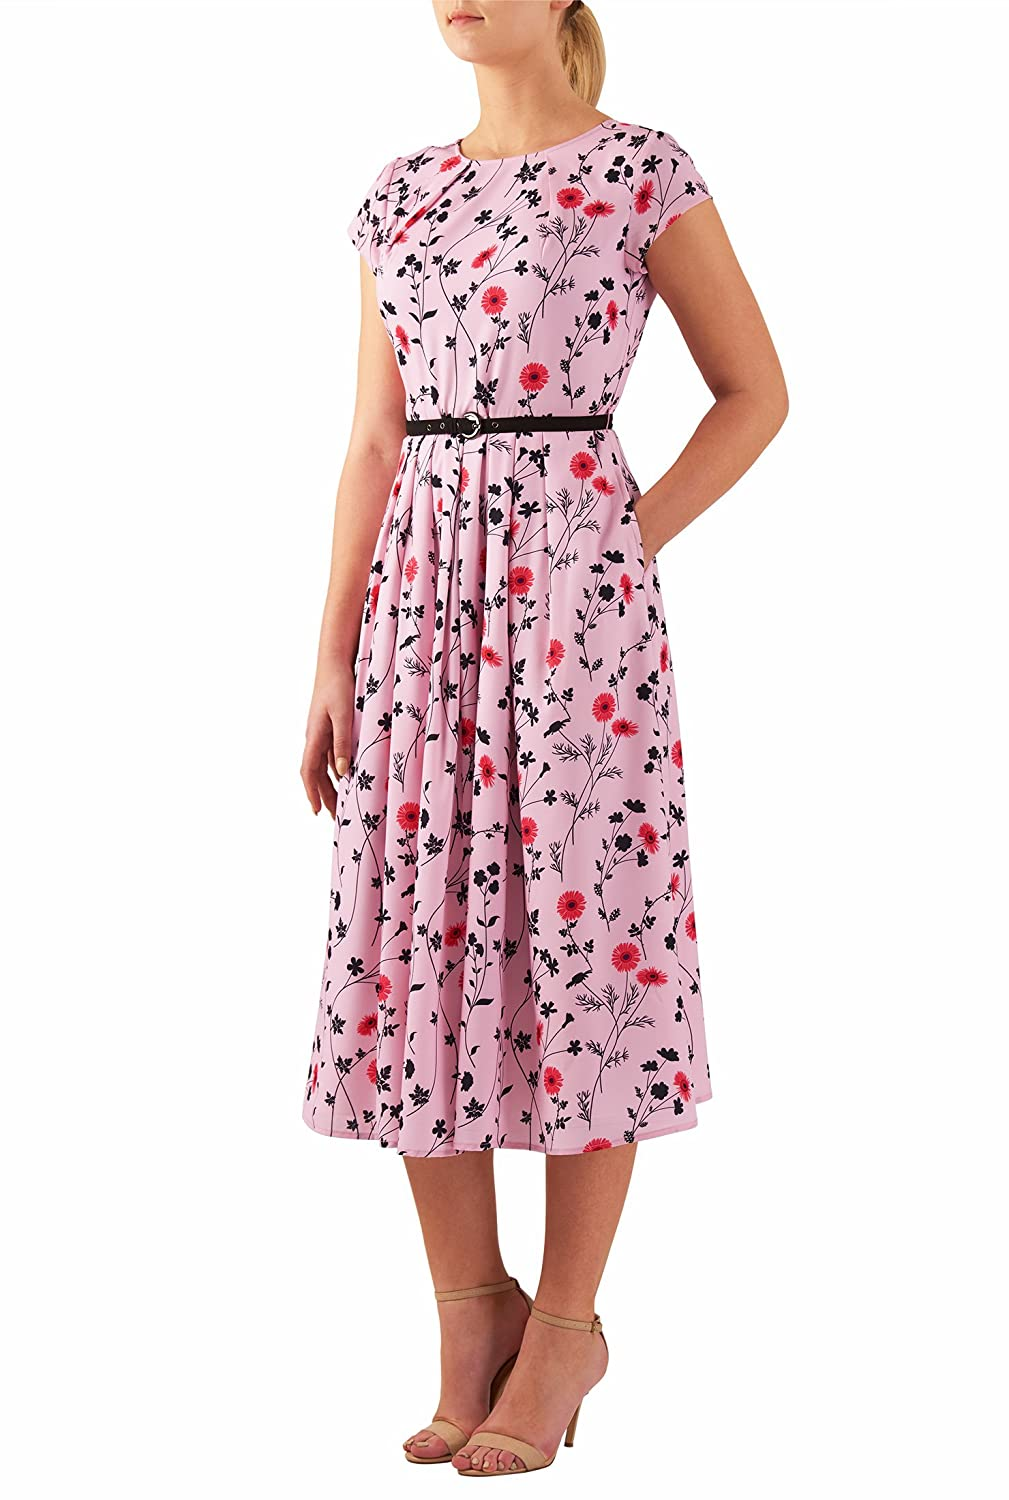 1940s Day Dresses Pleat neck belted floral print crepe dress $62.95 AT vintagedancer.com